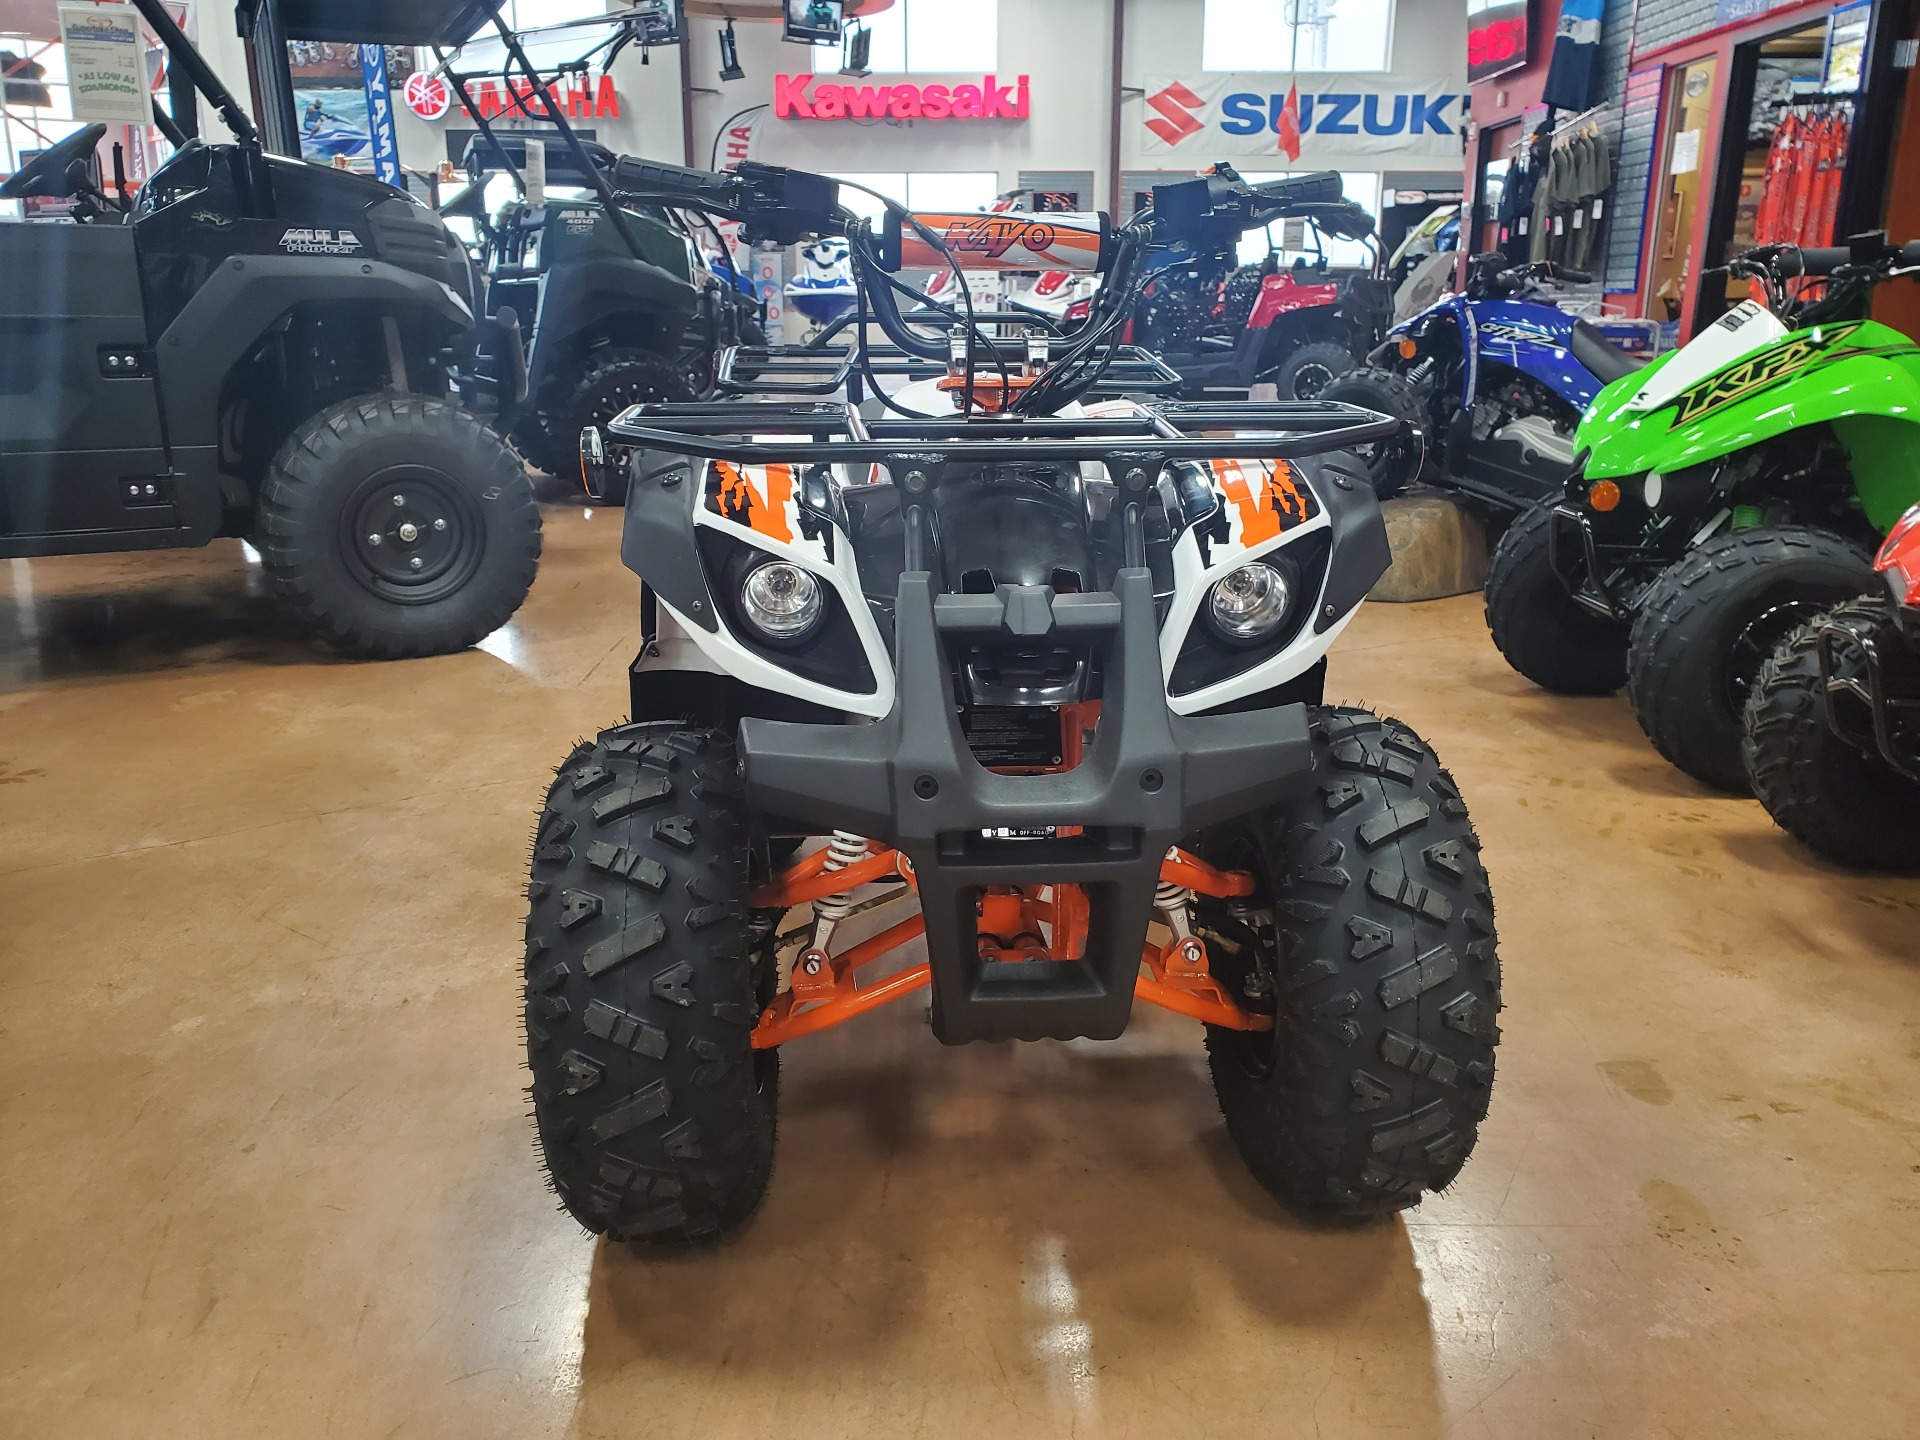 2020 Kayo Bull 125 in Evansville, Indiana - Photo 3